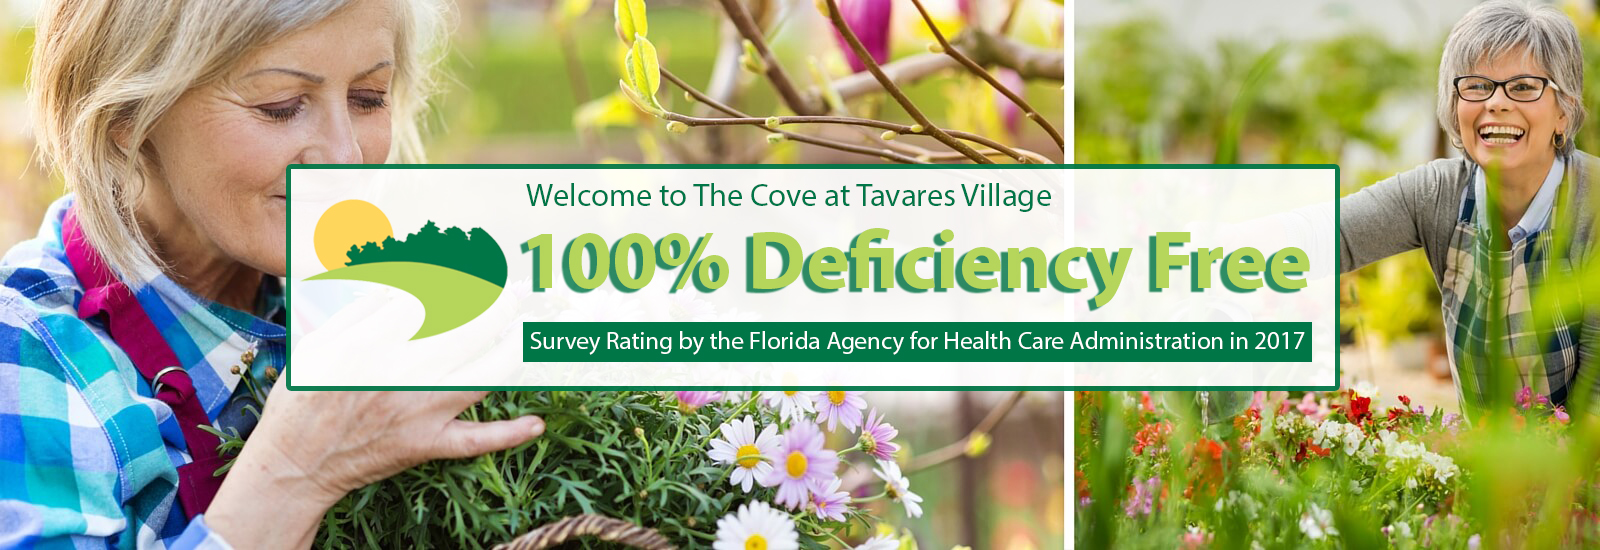 Deficiency Free Survey Florida Agency for Health Care Administration AHCA 2017 The-Cove-at-Tavares-Village